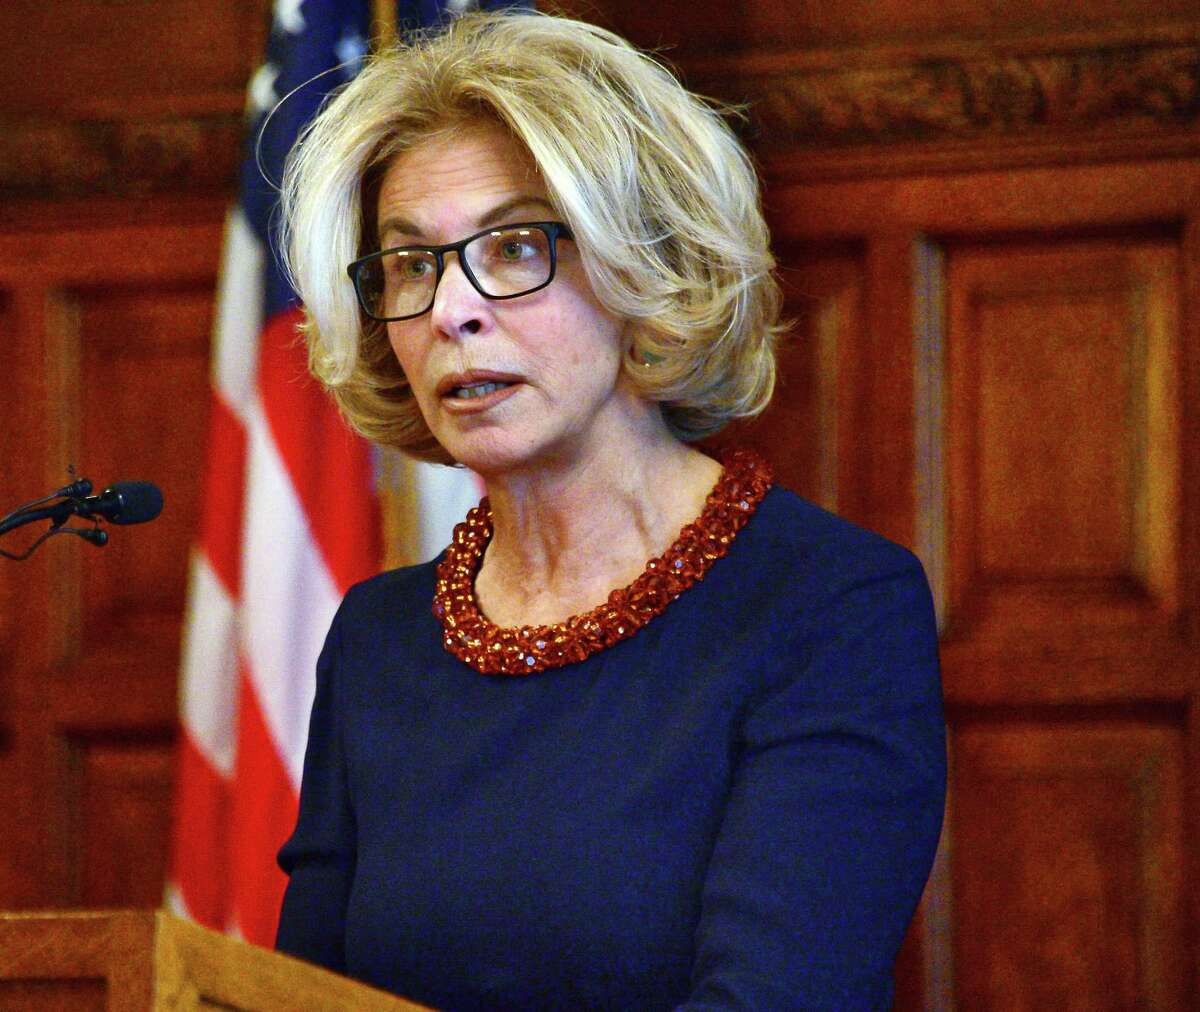 Chief Judge Janet DiFiore delivers her second annual State of Our Judiciary Address in the Court of Appeals on Tuesday, Feb. 6, 2018, in Albany, N.Y. (John Carl D'Annibale/Times Union archive)